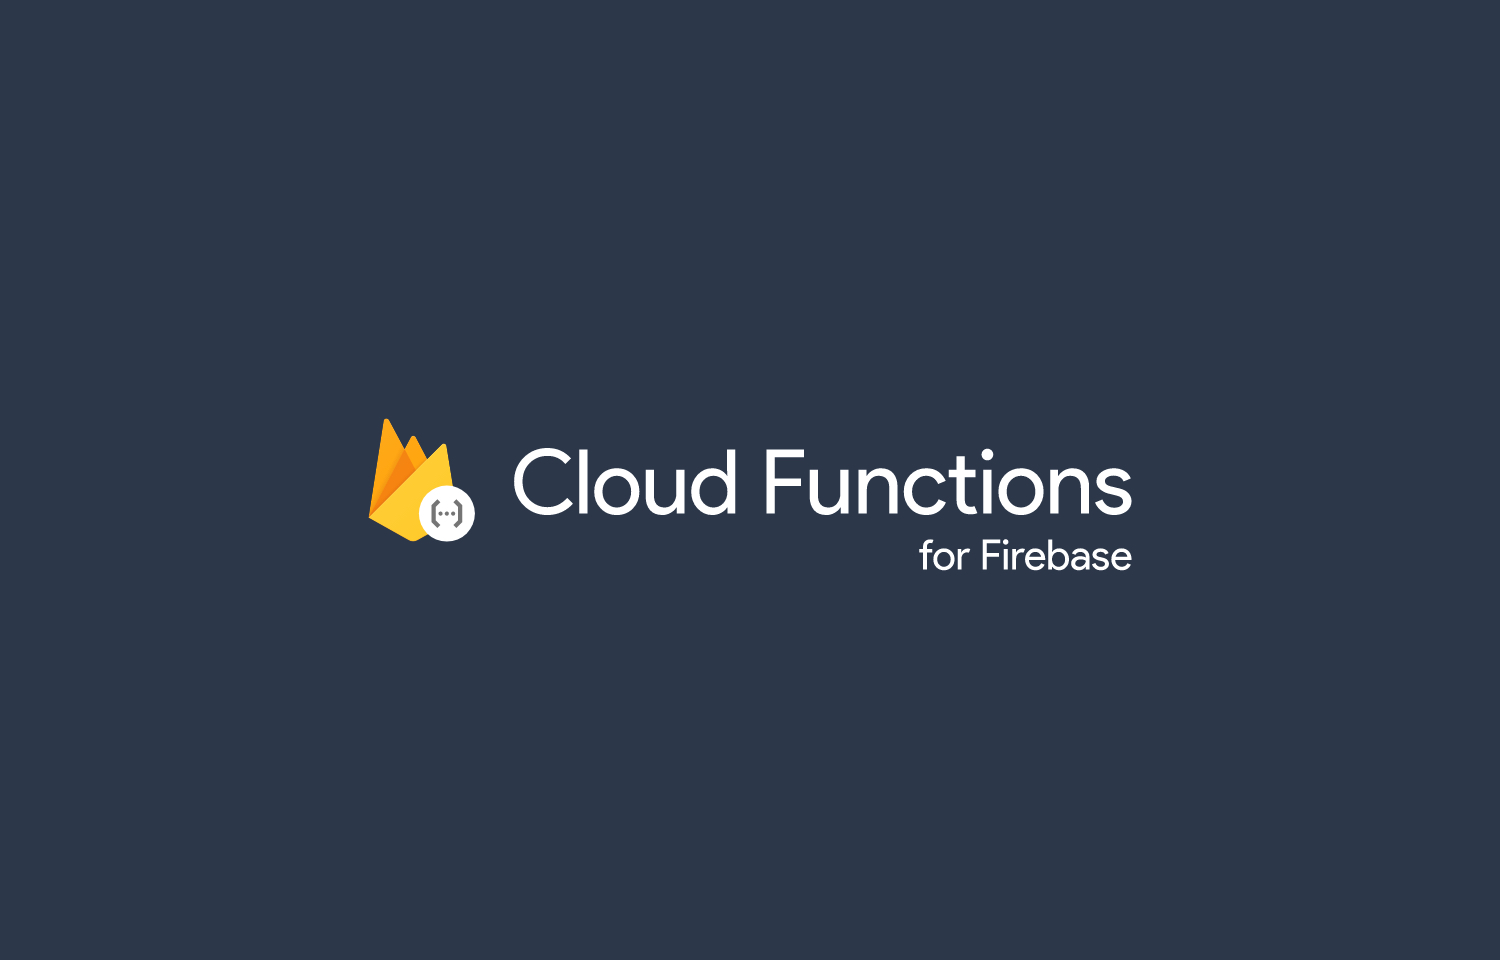 Cloud Functions for firebaseとは?